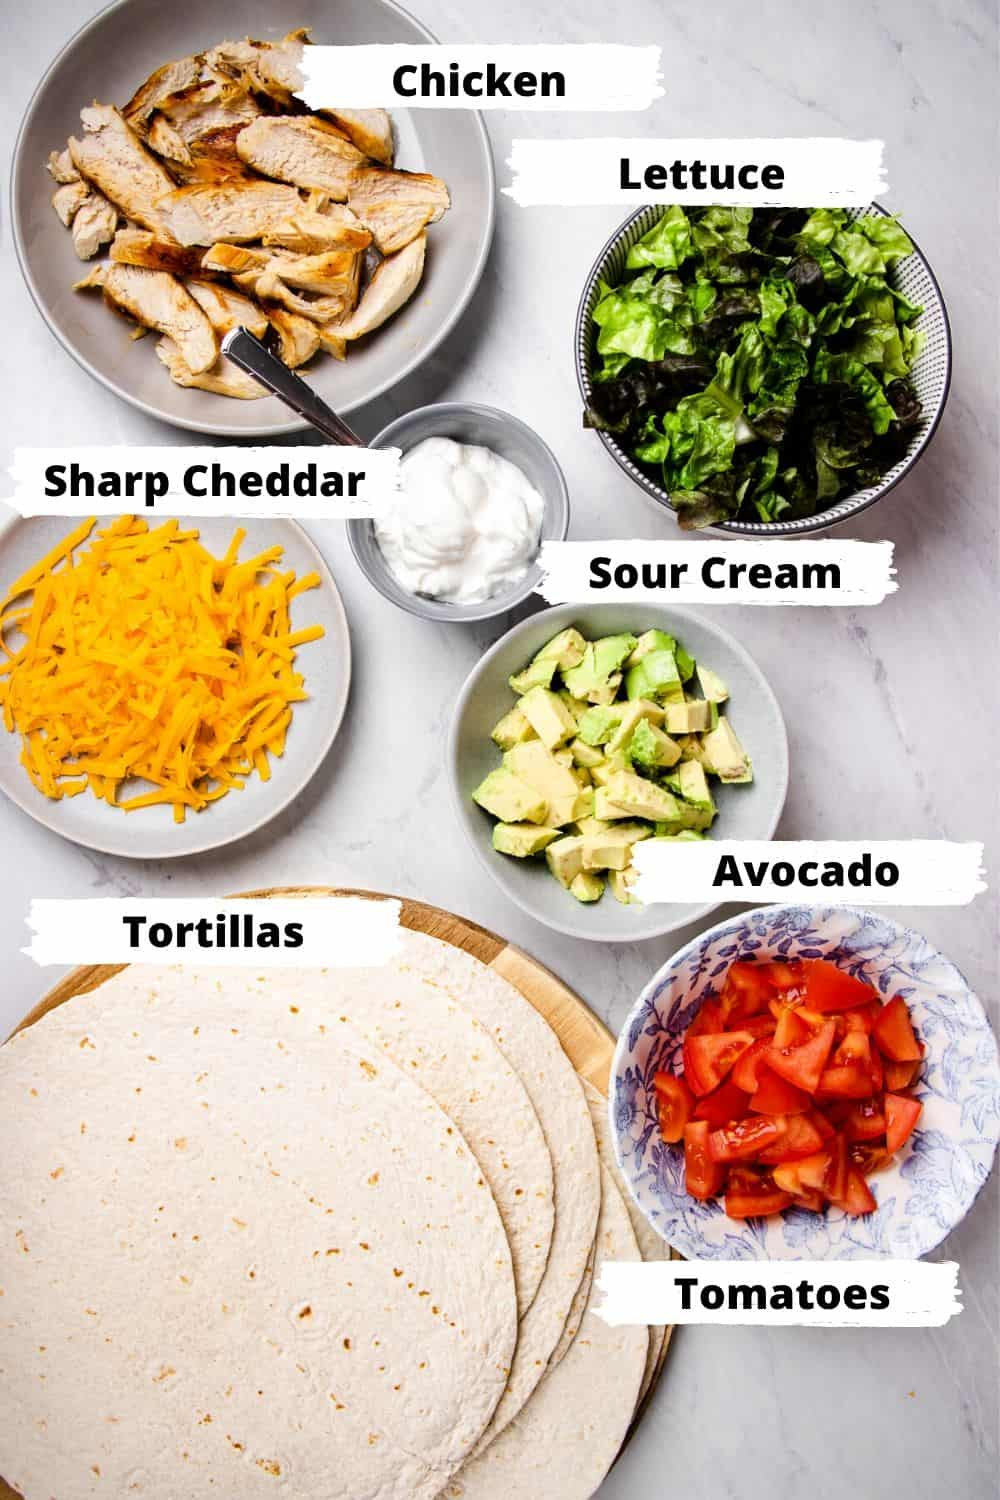 Ingredients for Chicken Avocado Wraps